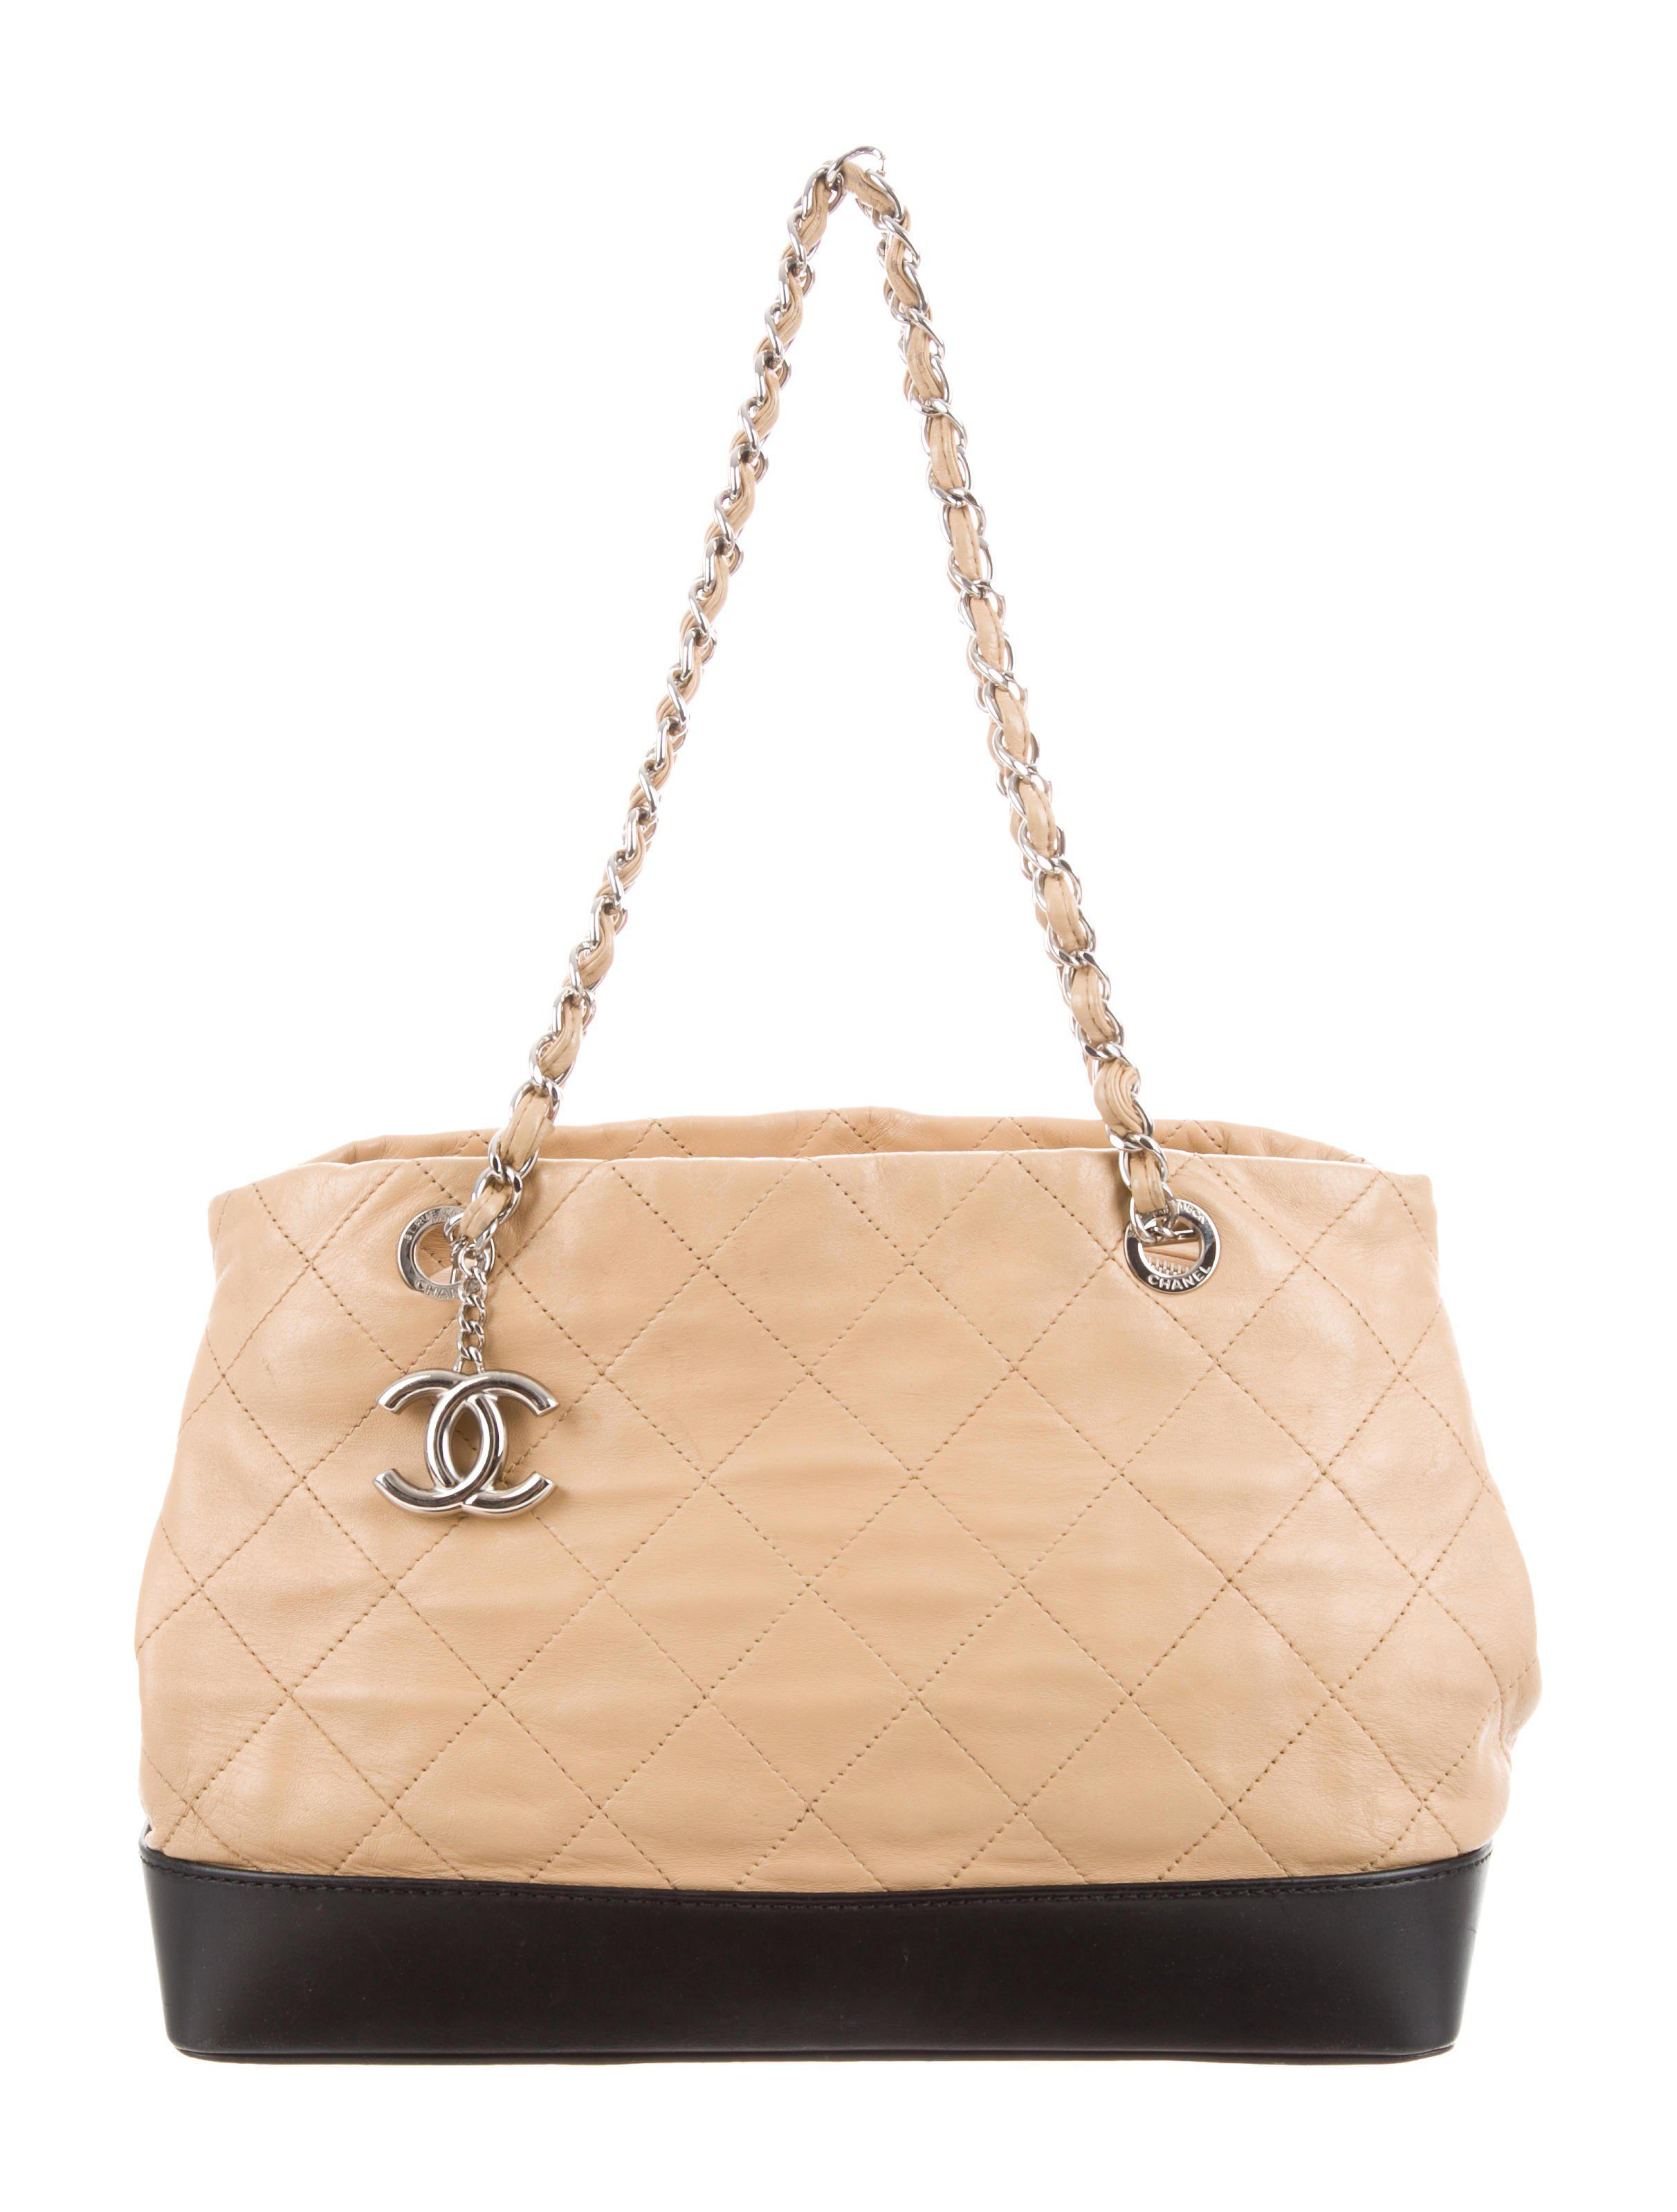 cae3ed2d3b80 Lyst - Chanel Quilted Vip Bag Tan in Metallic